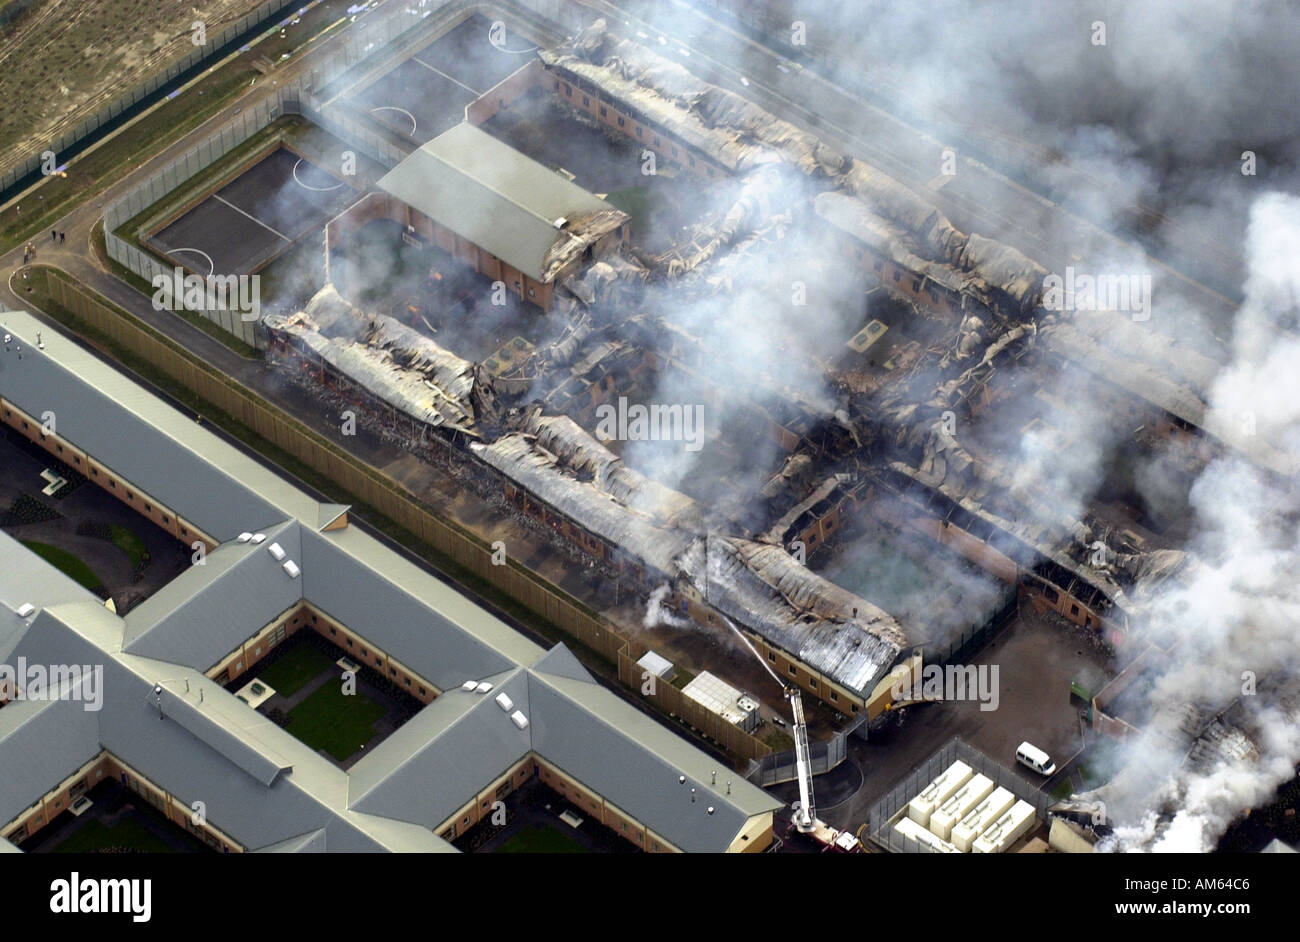 Yarlswood detention centre fire Aerial view of the damge caused showing fire crews still at work the next morning UK - Stock Image